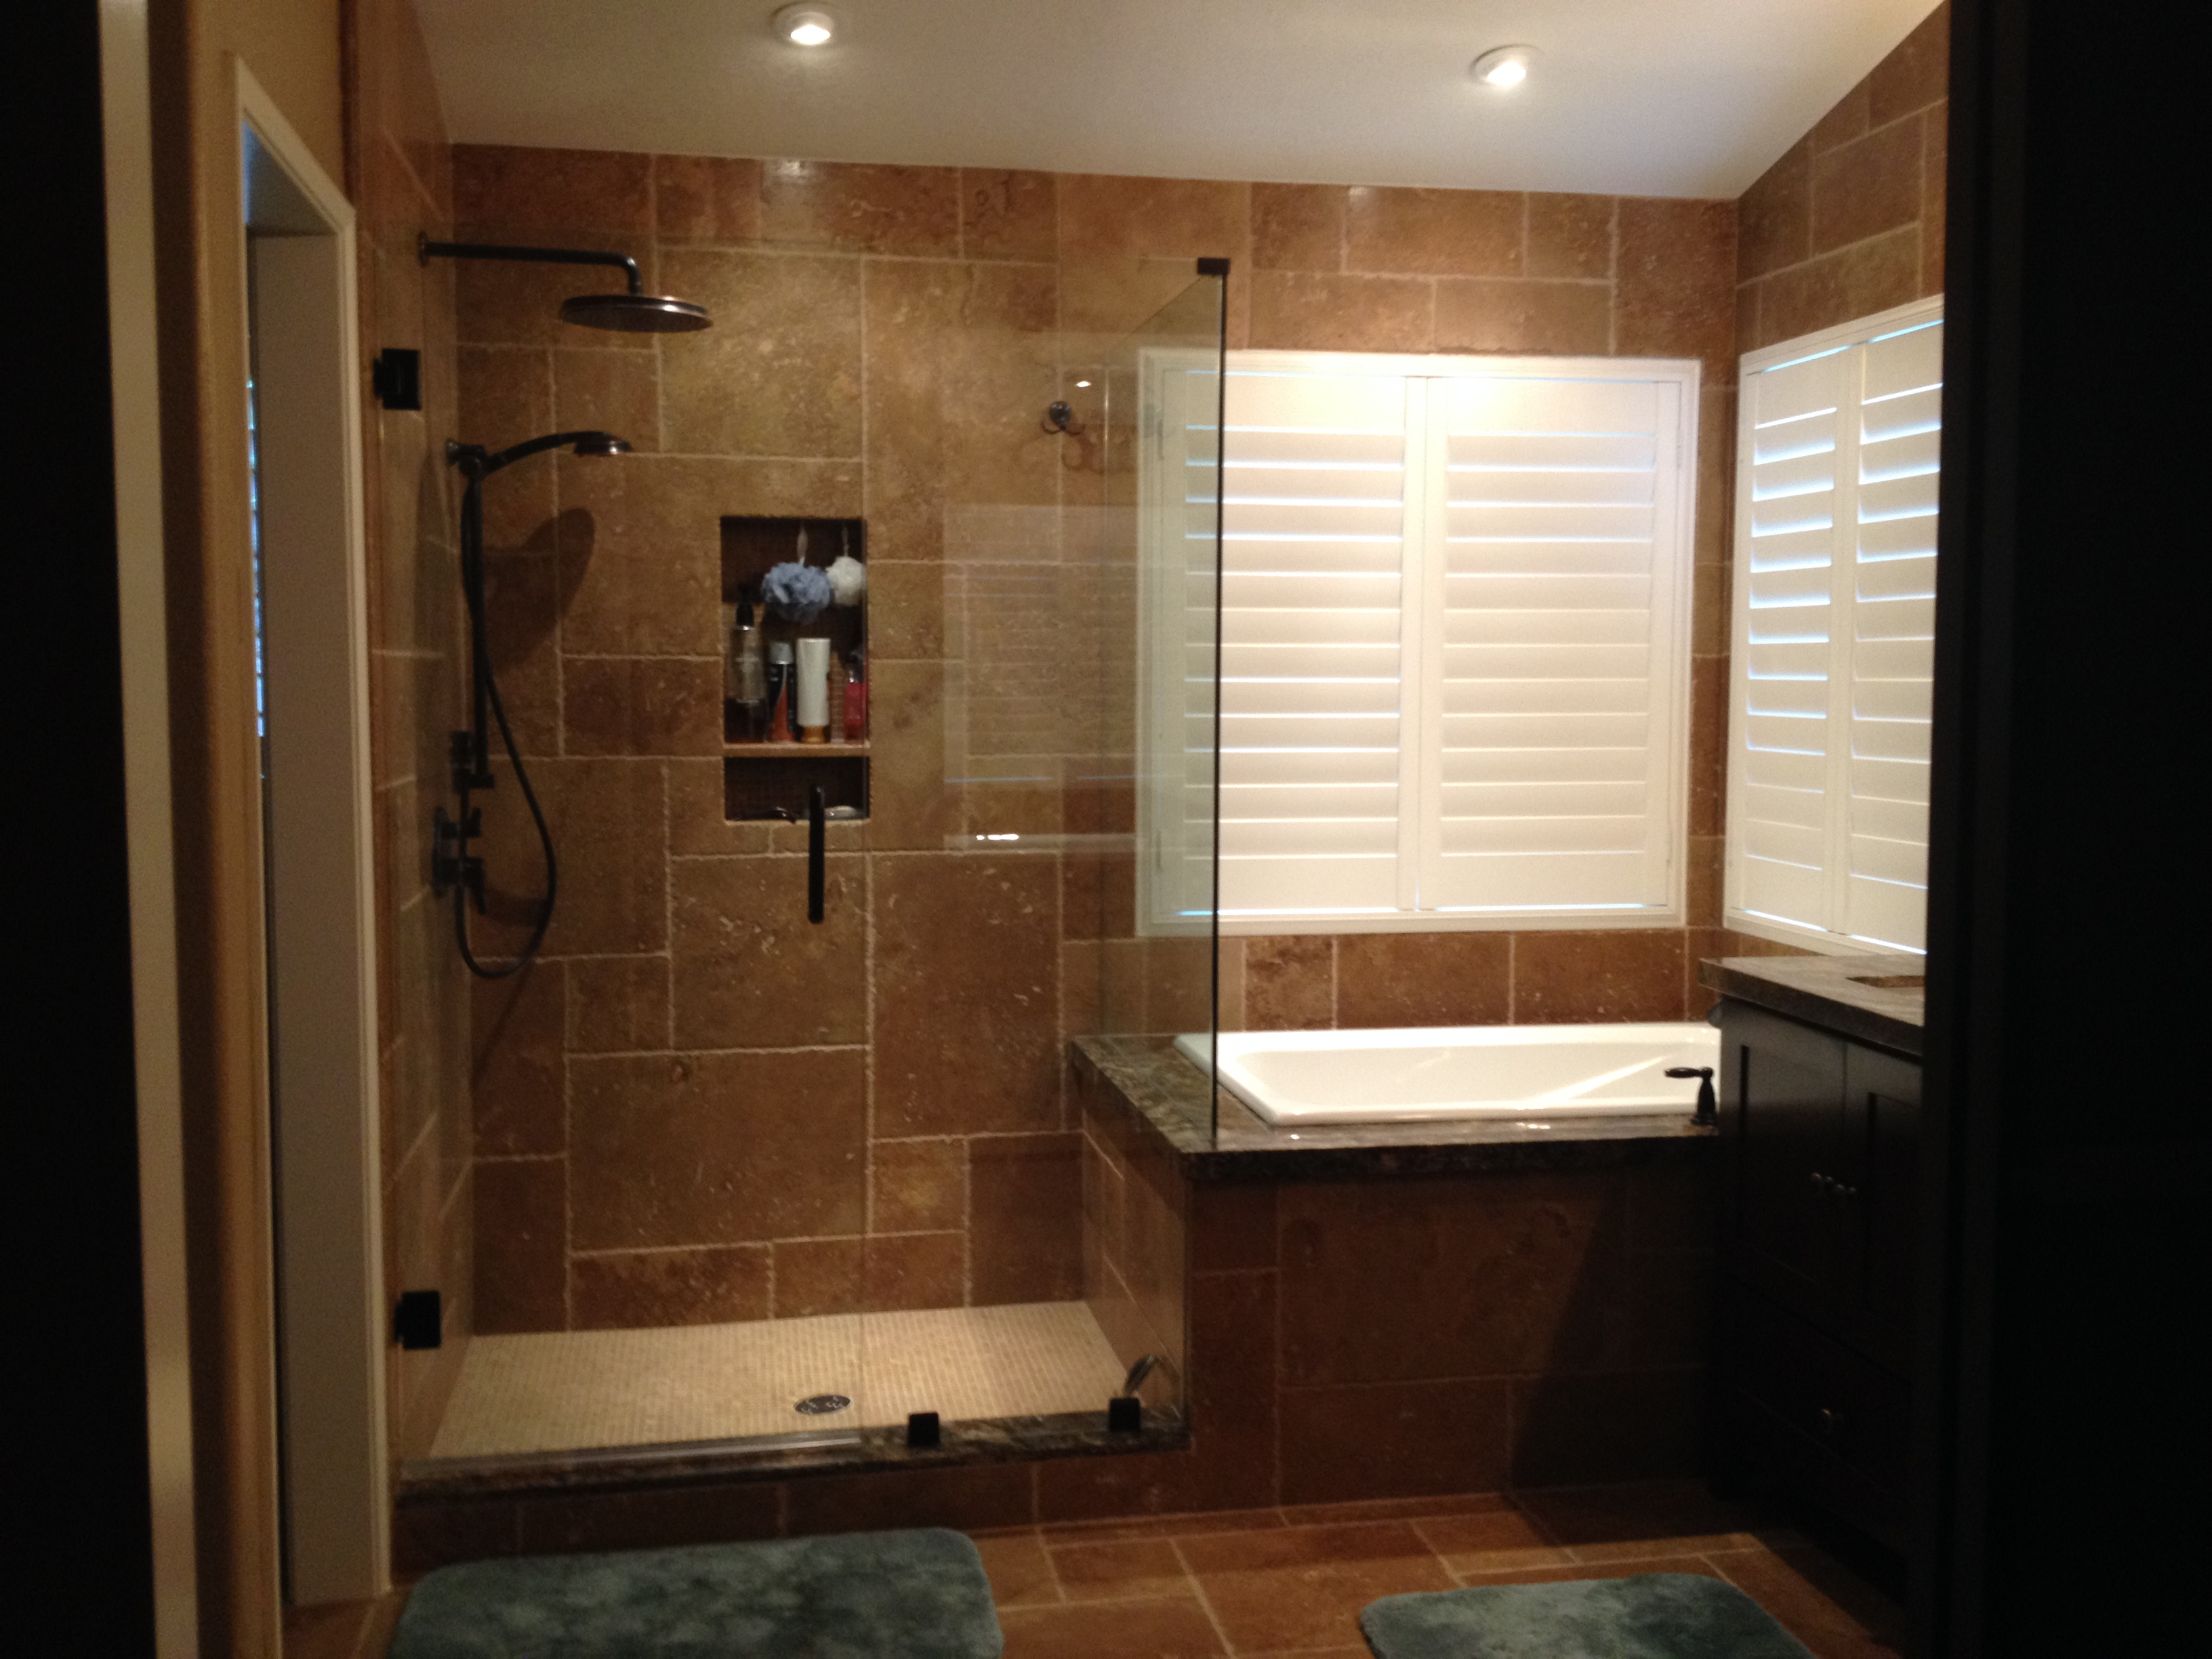 Pictures of our 23 922 bathroom remodel and some lessons for Bathroom remodel 70 square feet